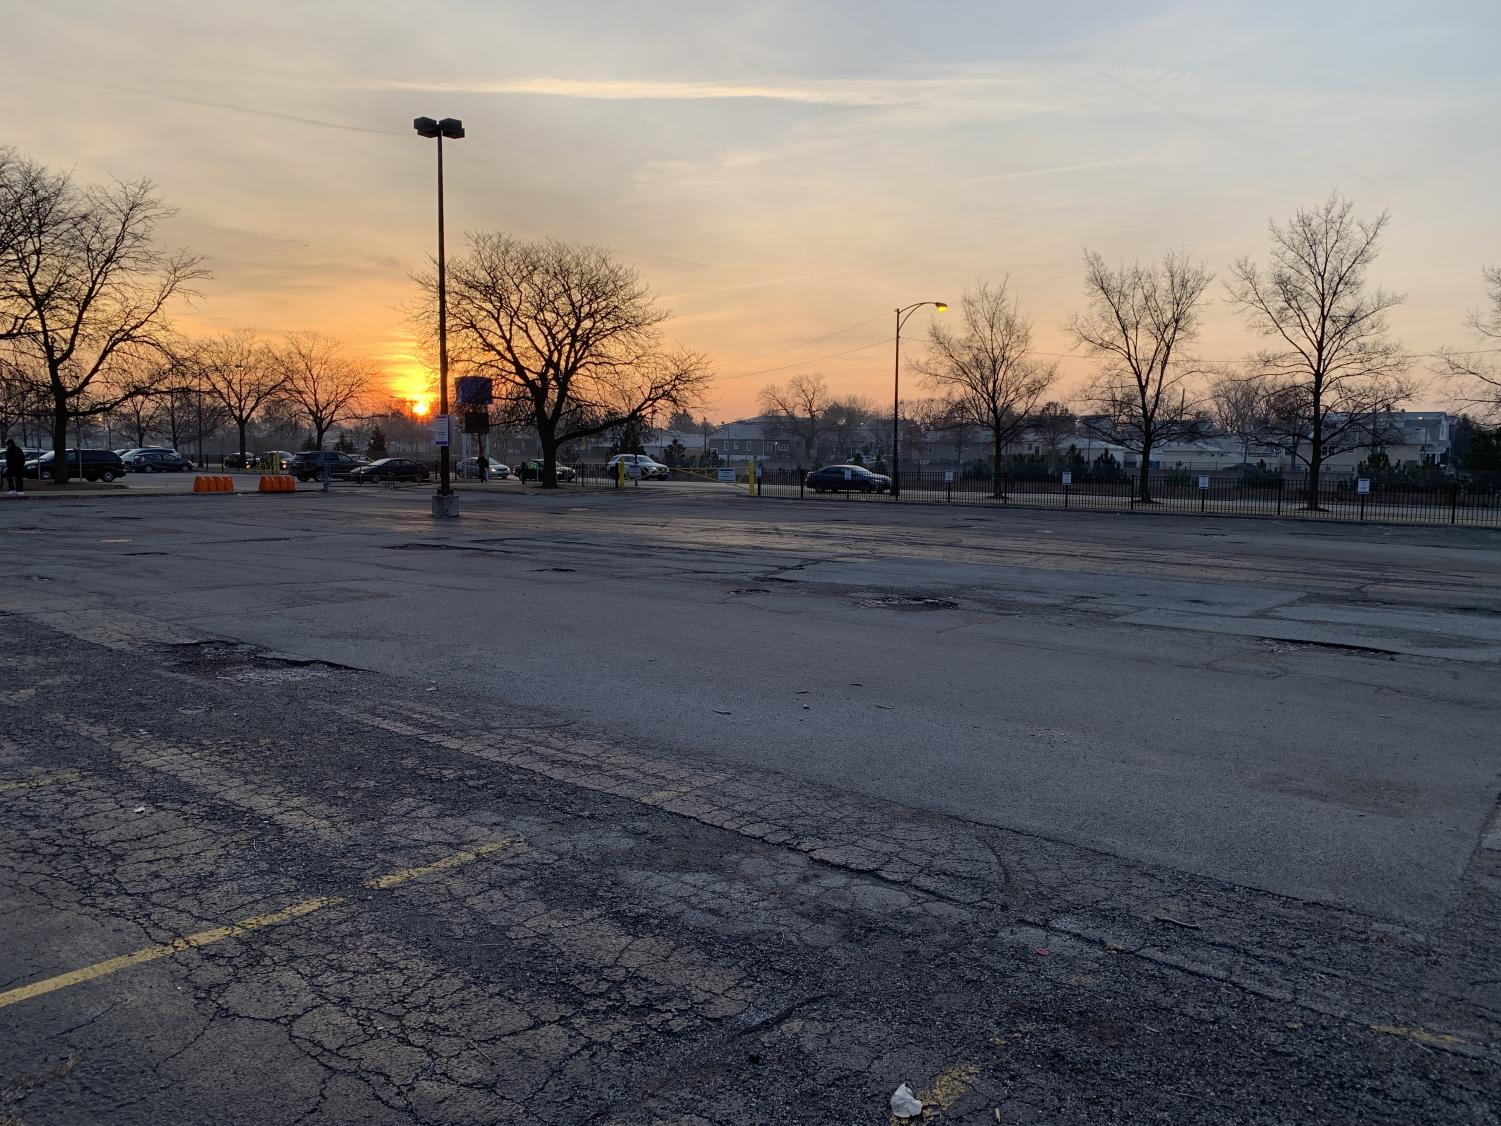 The parking lot sits empty as the sun rises at 7:00 a.m. Photographer  Katarina Ilic.